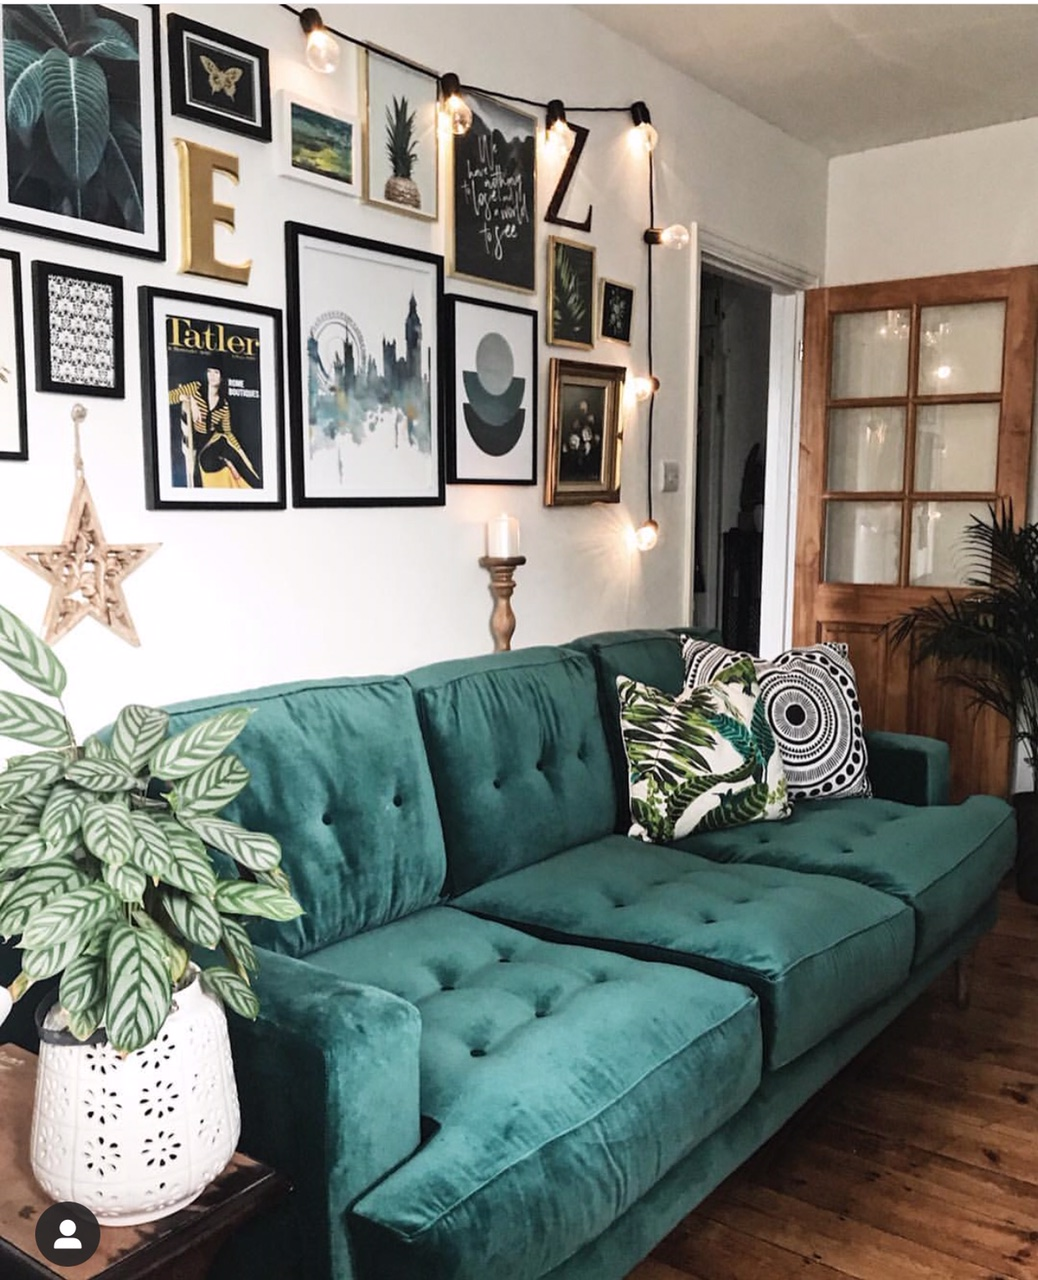 Green, gold and wooden tones looking splendid together - sofa from  sofa.com